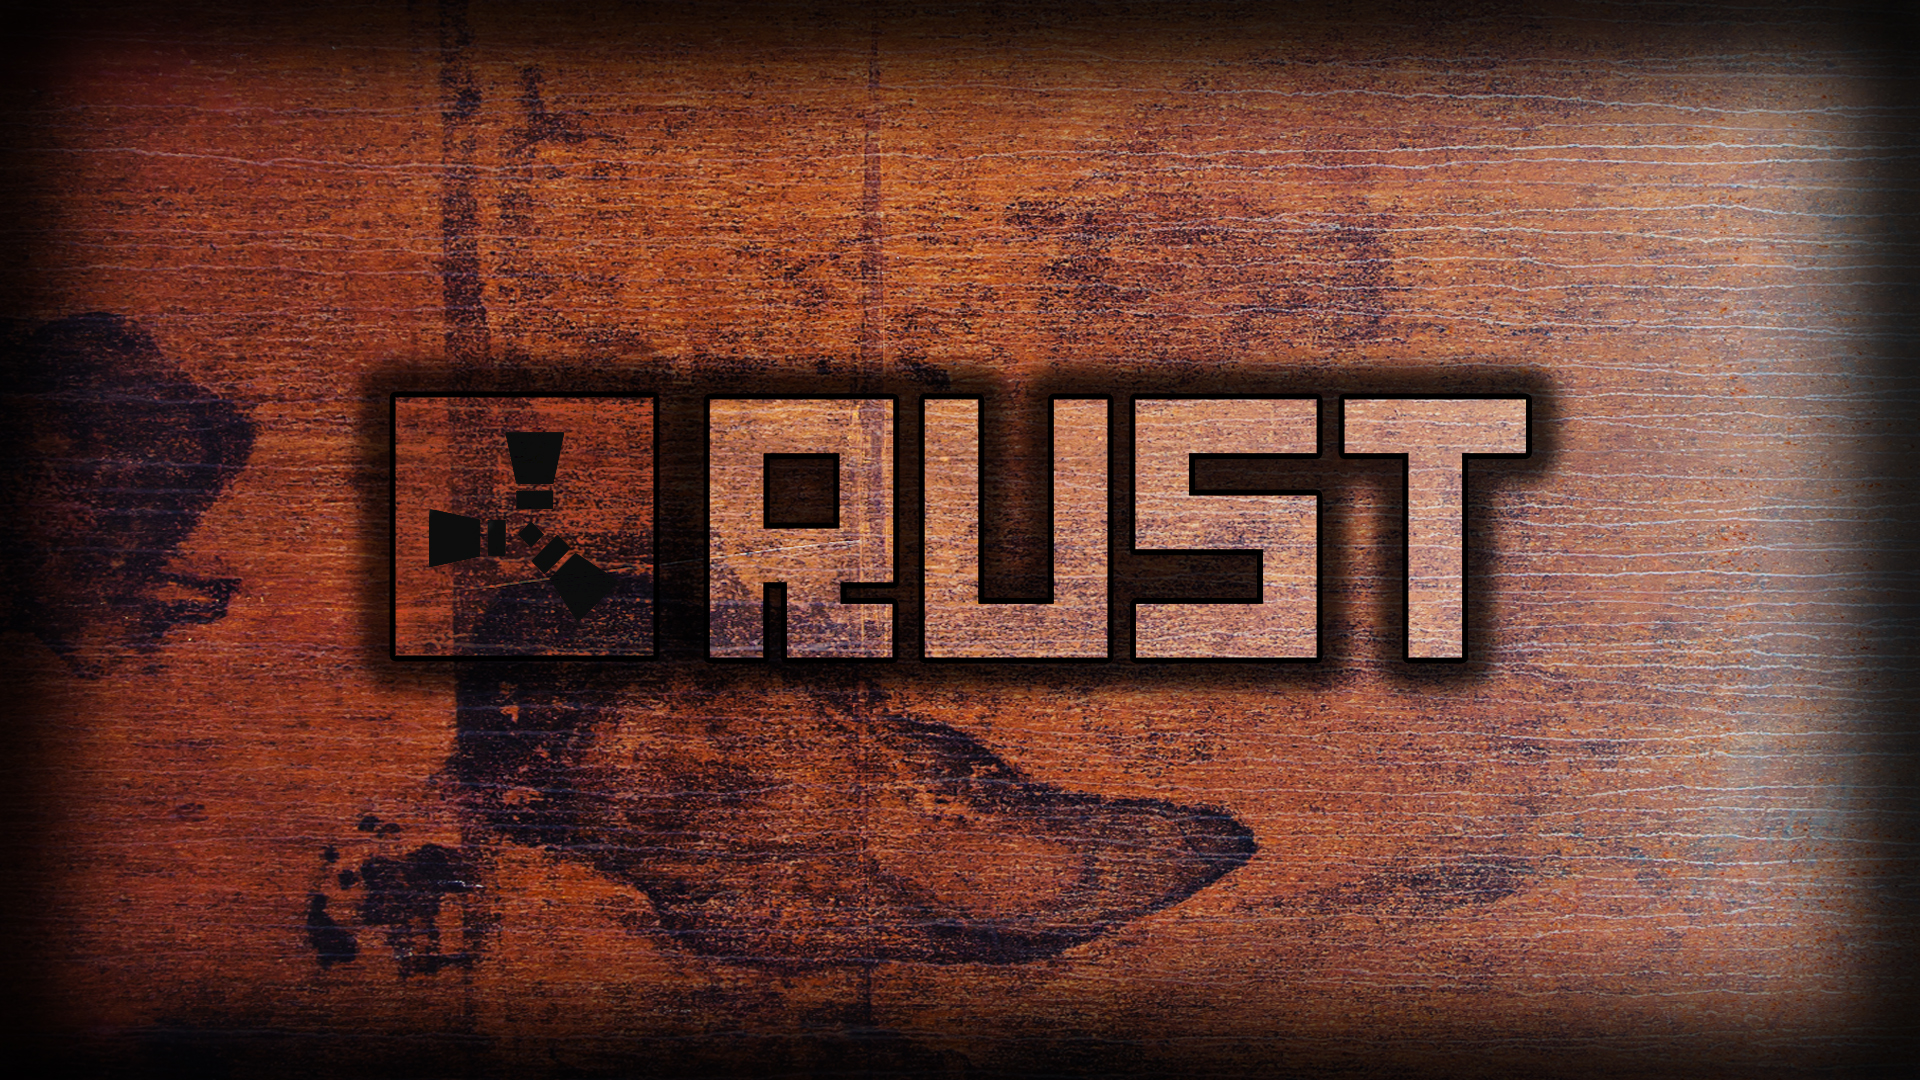 Hd Fish Live Wallpaper For Pc Download Rust Game Wallpaper Gallery